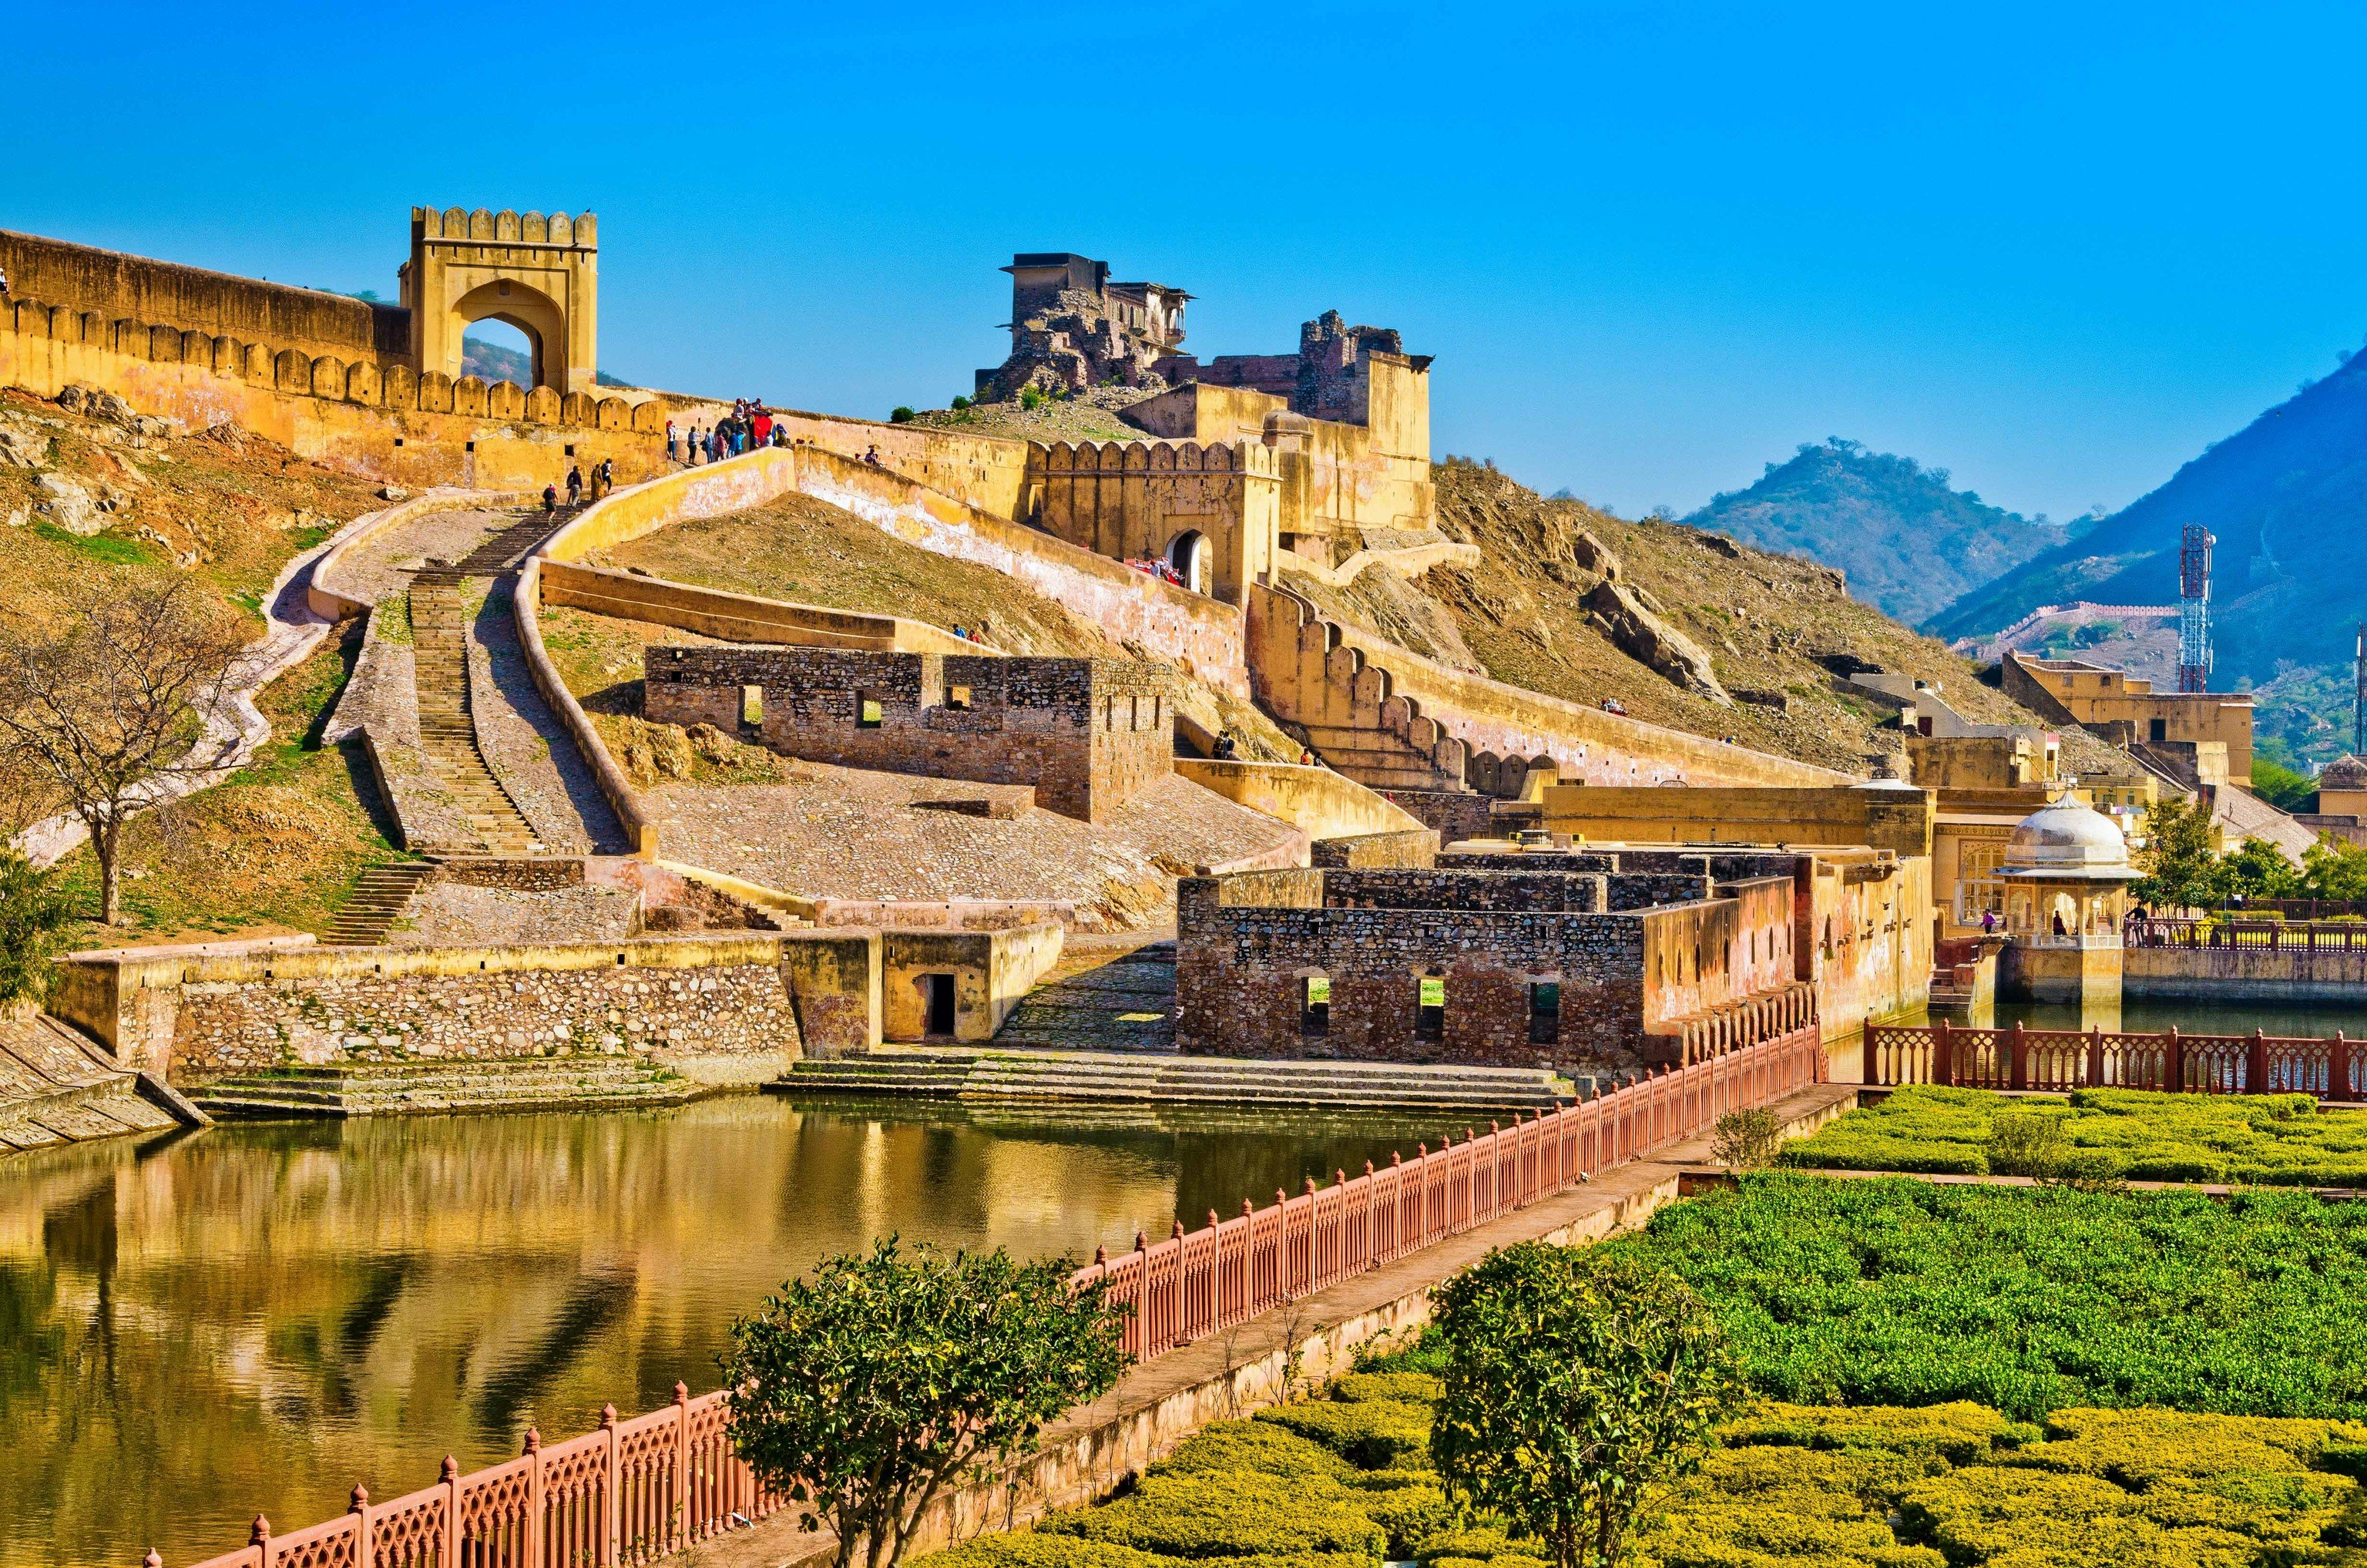 Travel Tips grass sky outdoor landmark historic site mountain tourist attraction mountain village Village real estate reflection tourism estate ancient history unesco world heritage site landscape City mount scenery archaeological site